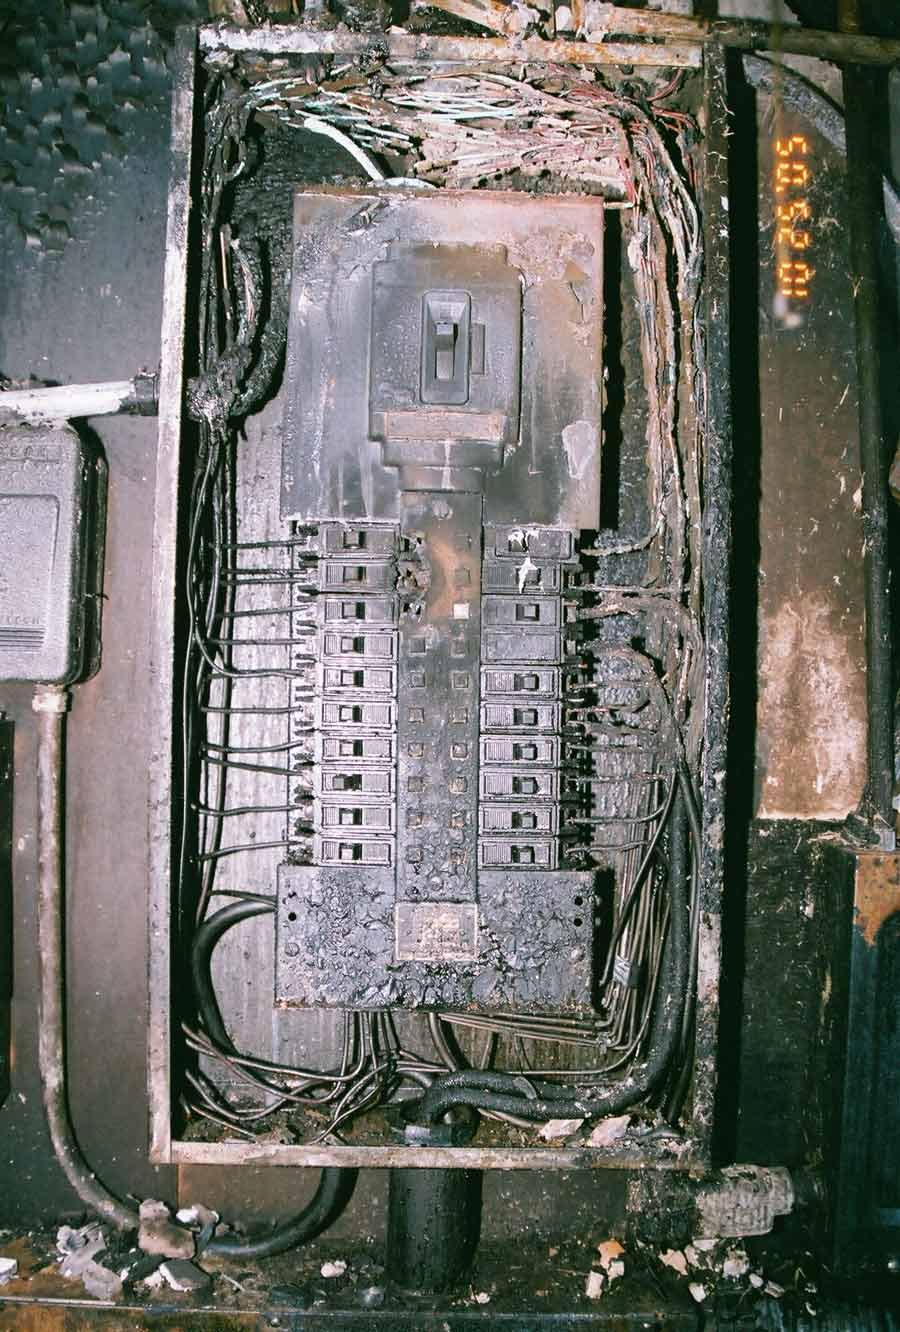 Electrical Distribution Panels Circuit Breaker Fires Electric Box Fuses Severe Arcing In Panel